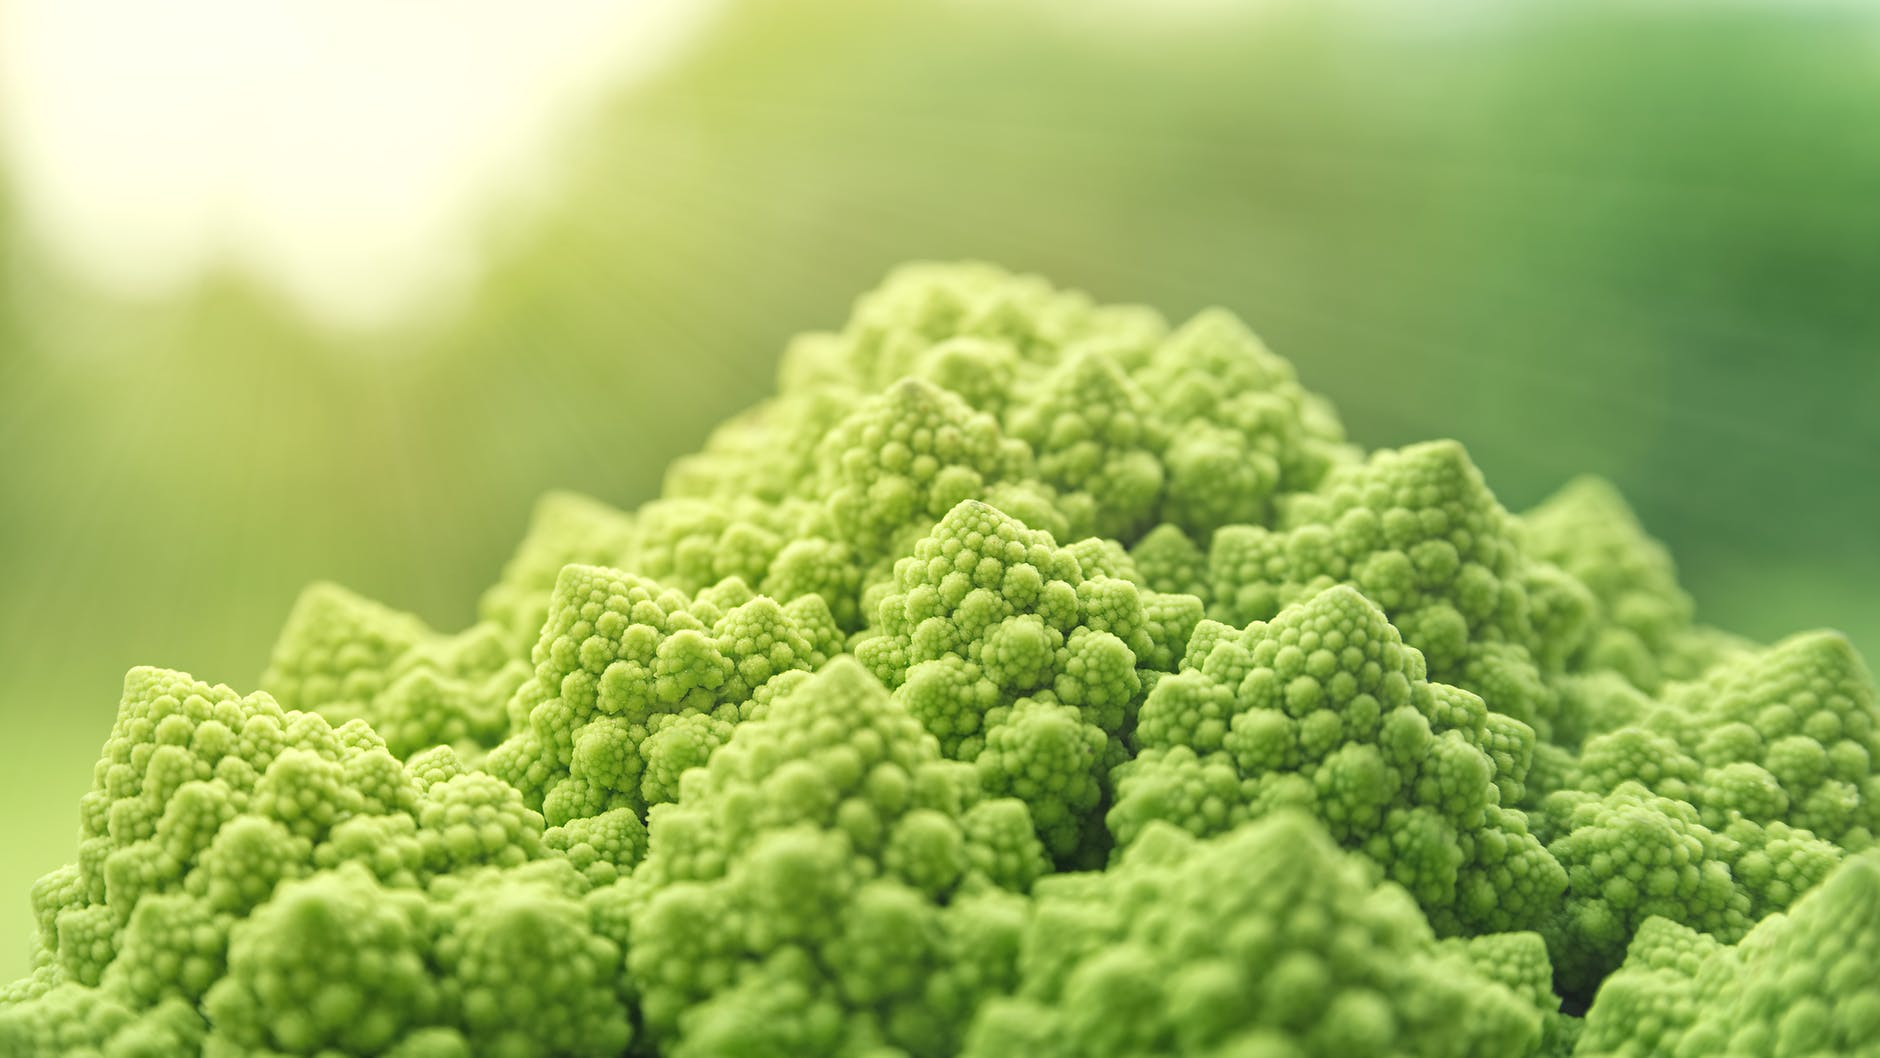 tilt lens photo of green cauliflower